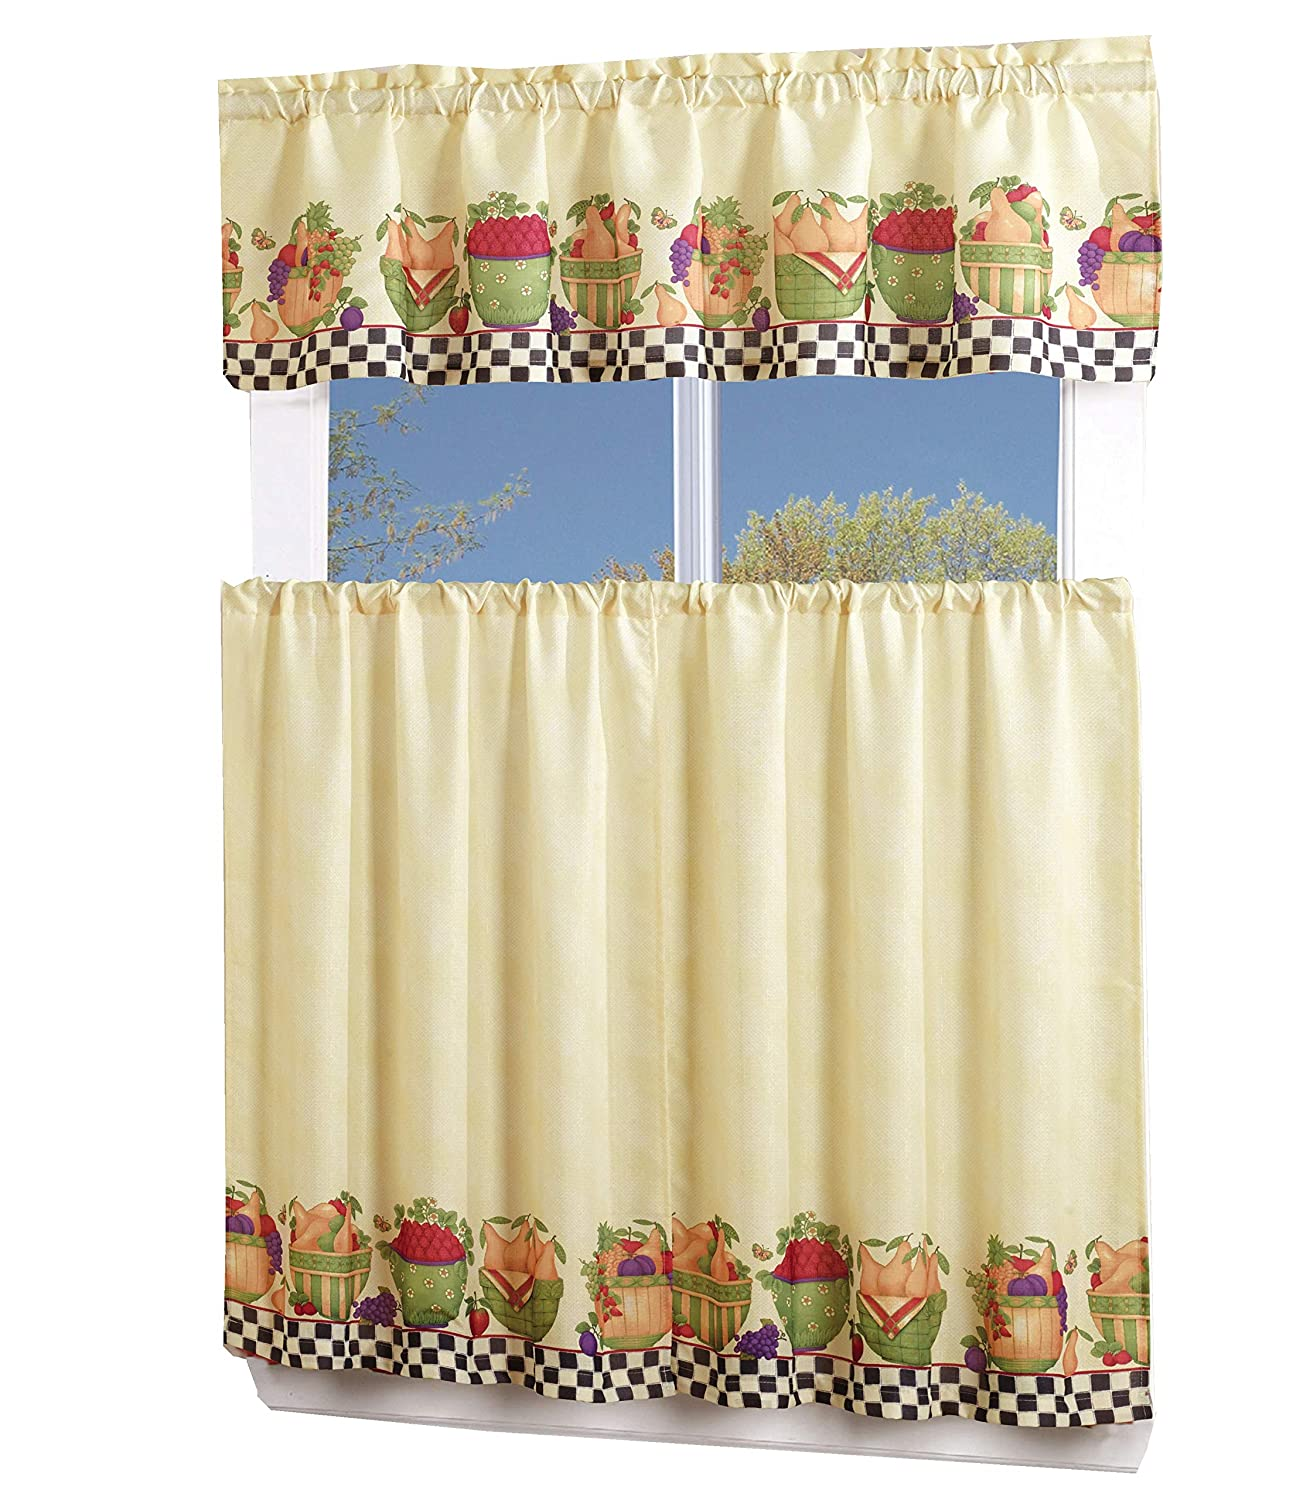 MarCielo 3 Piece Printed Floral Kitchen/Cafe Curtain With Swag and Tier Window Curtain Set (Fruit) ca-printing kitchen curtain